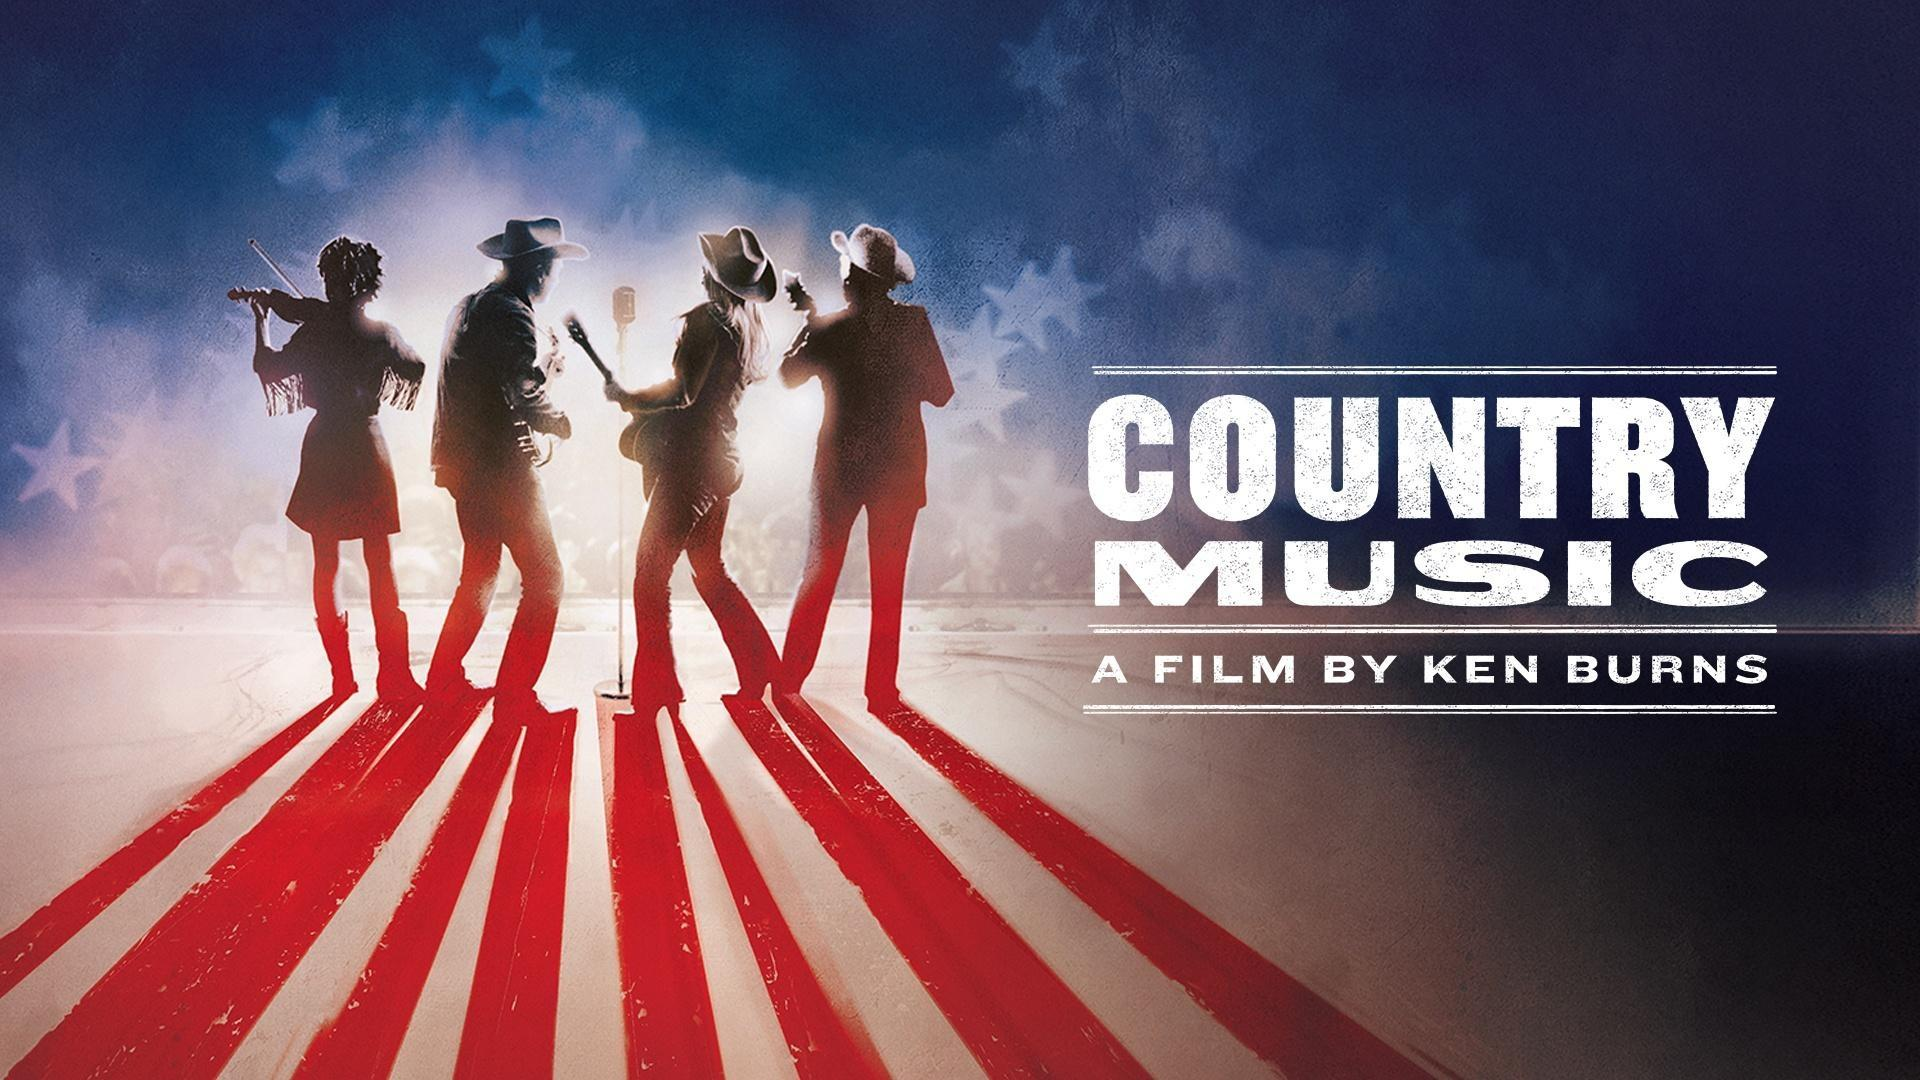 Country Music documentary branded image